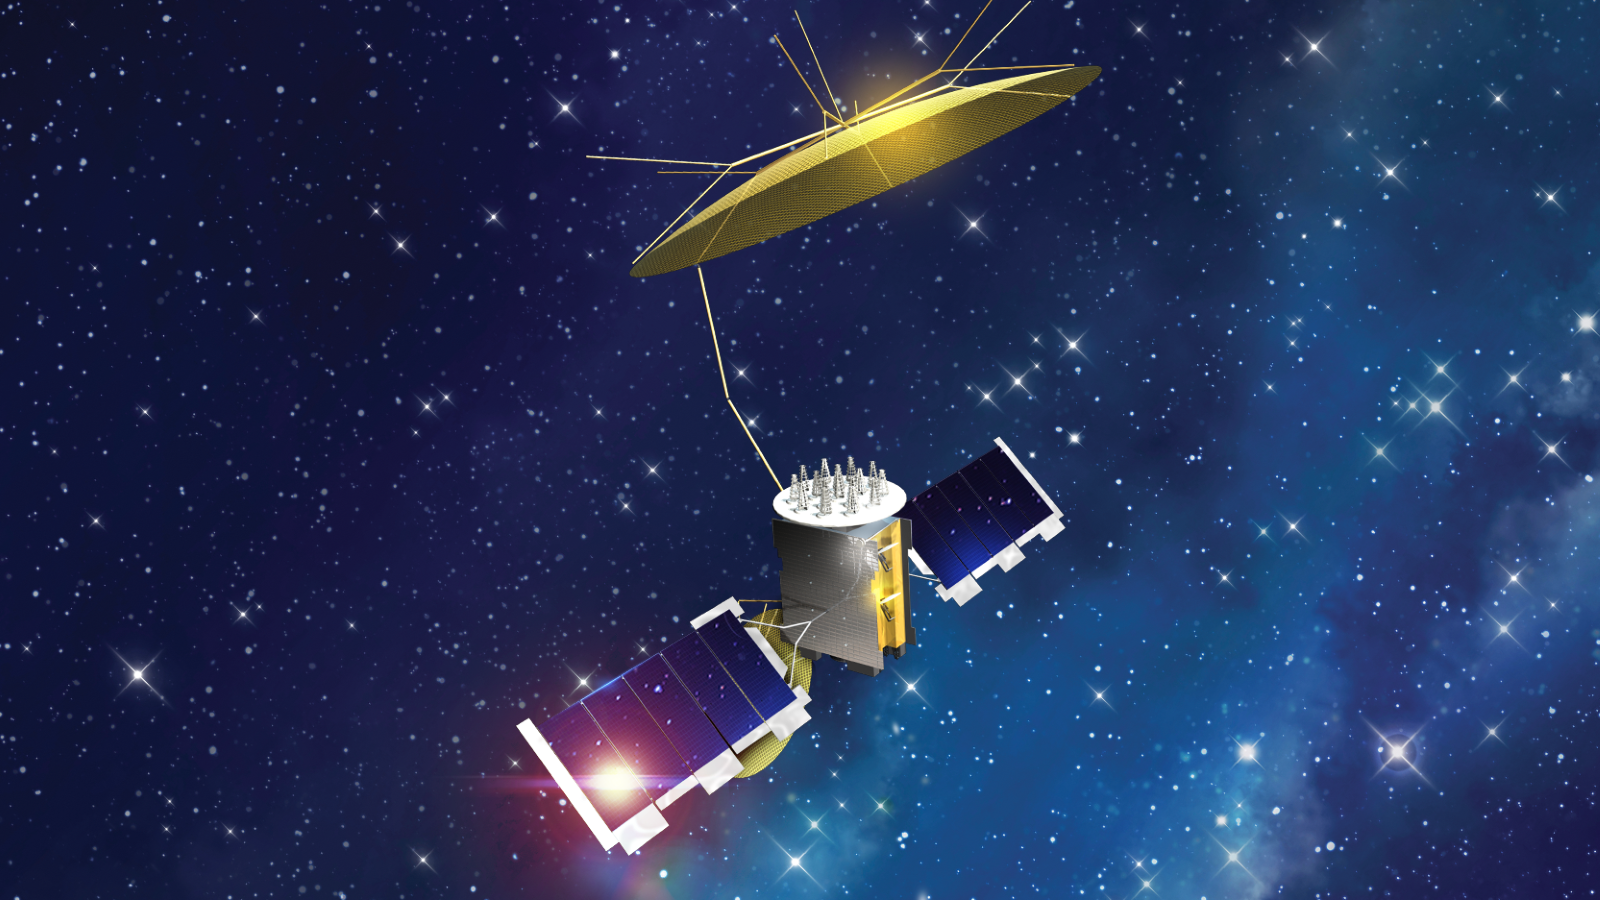 A MUOS satellite in space.The MUOS-5 satellite is now providing secure UHF telecommunications to U.S. and allied mobile forces.